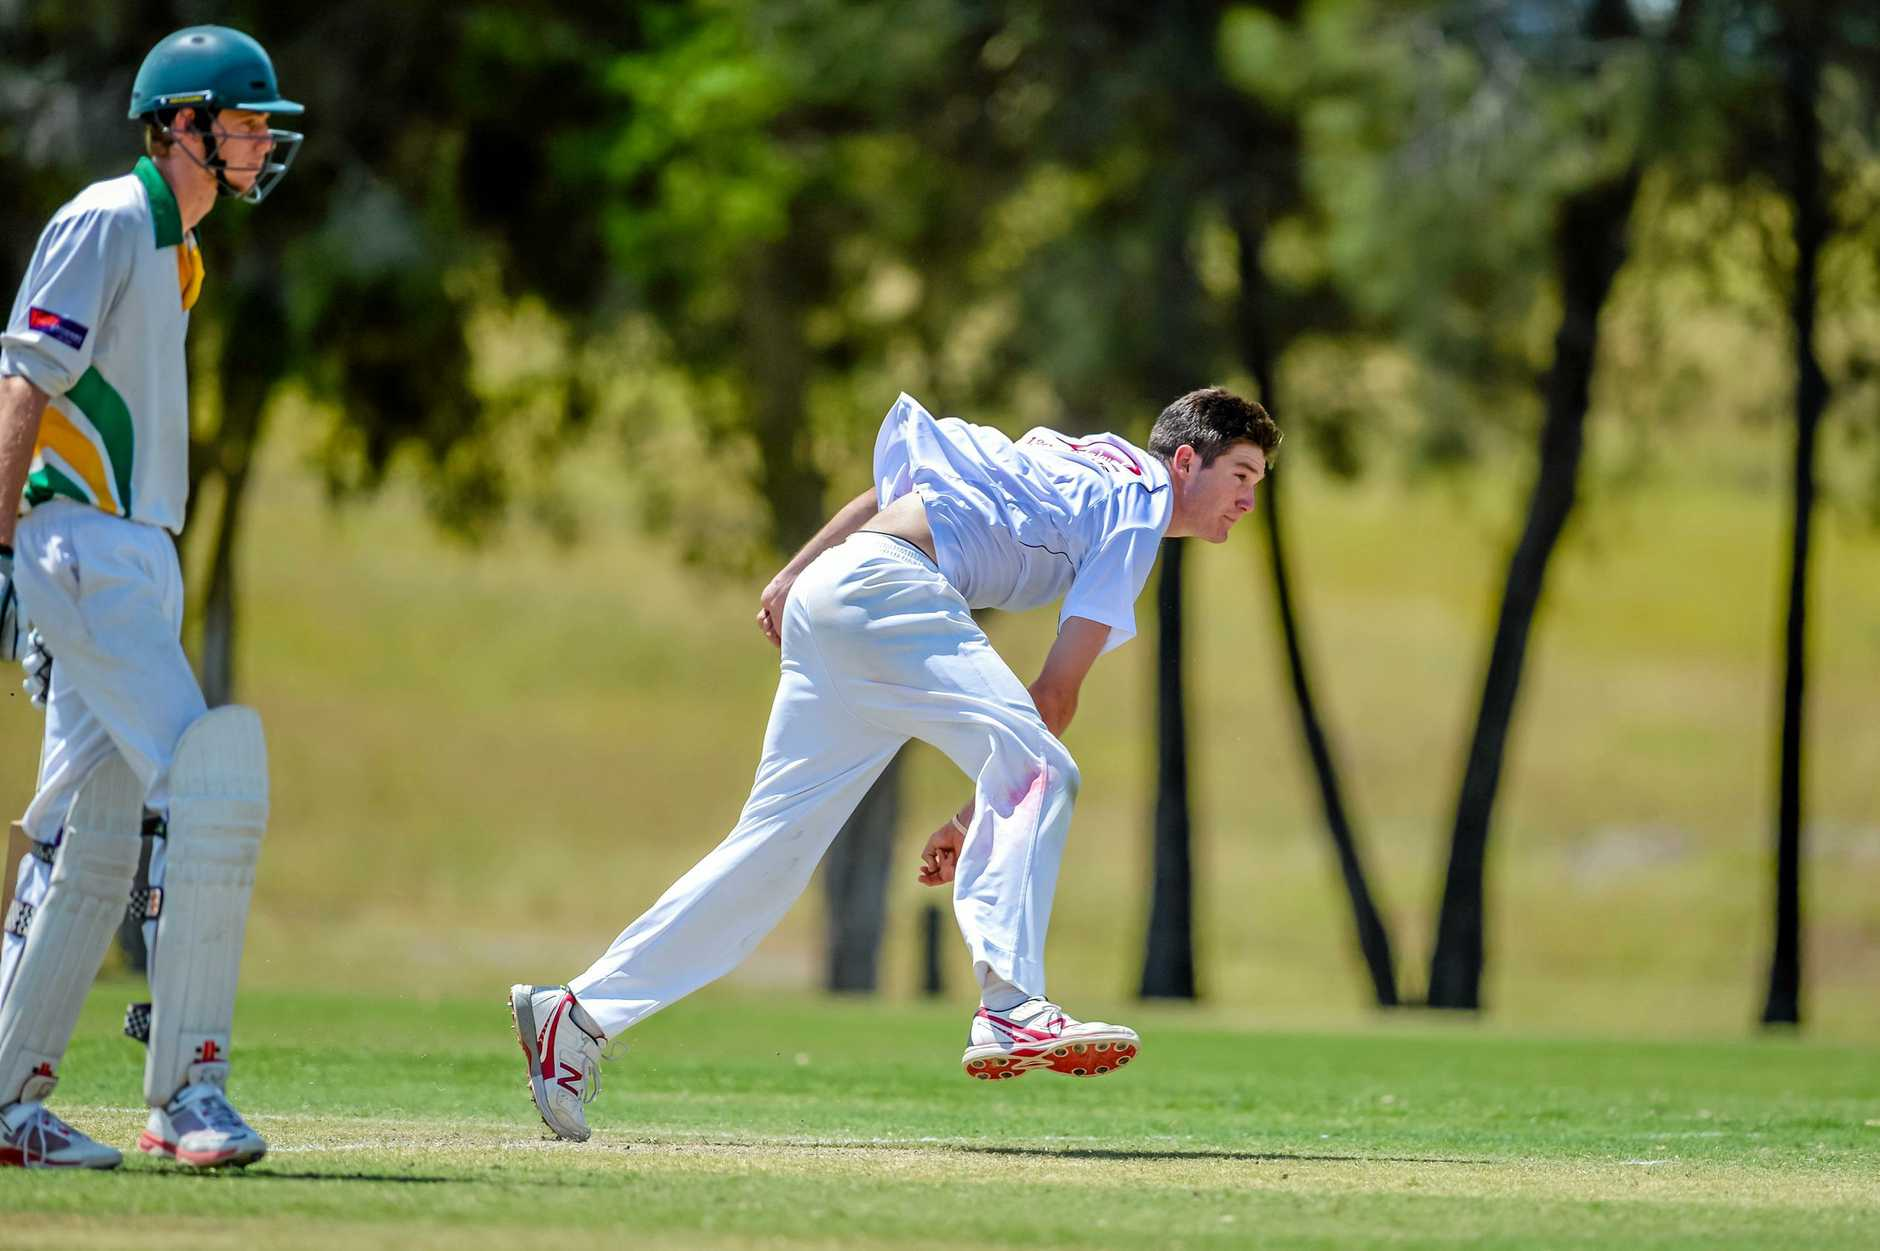 FOCUS: The Gympie Gold bowlers will prepare to rip through the Yandina Pioneers and Byrcen Mitchell will hope to play his part also with the bat.